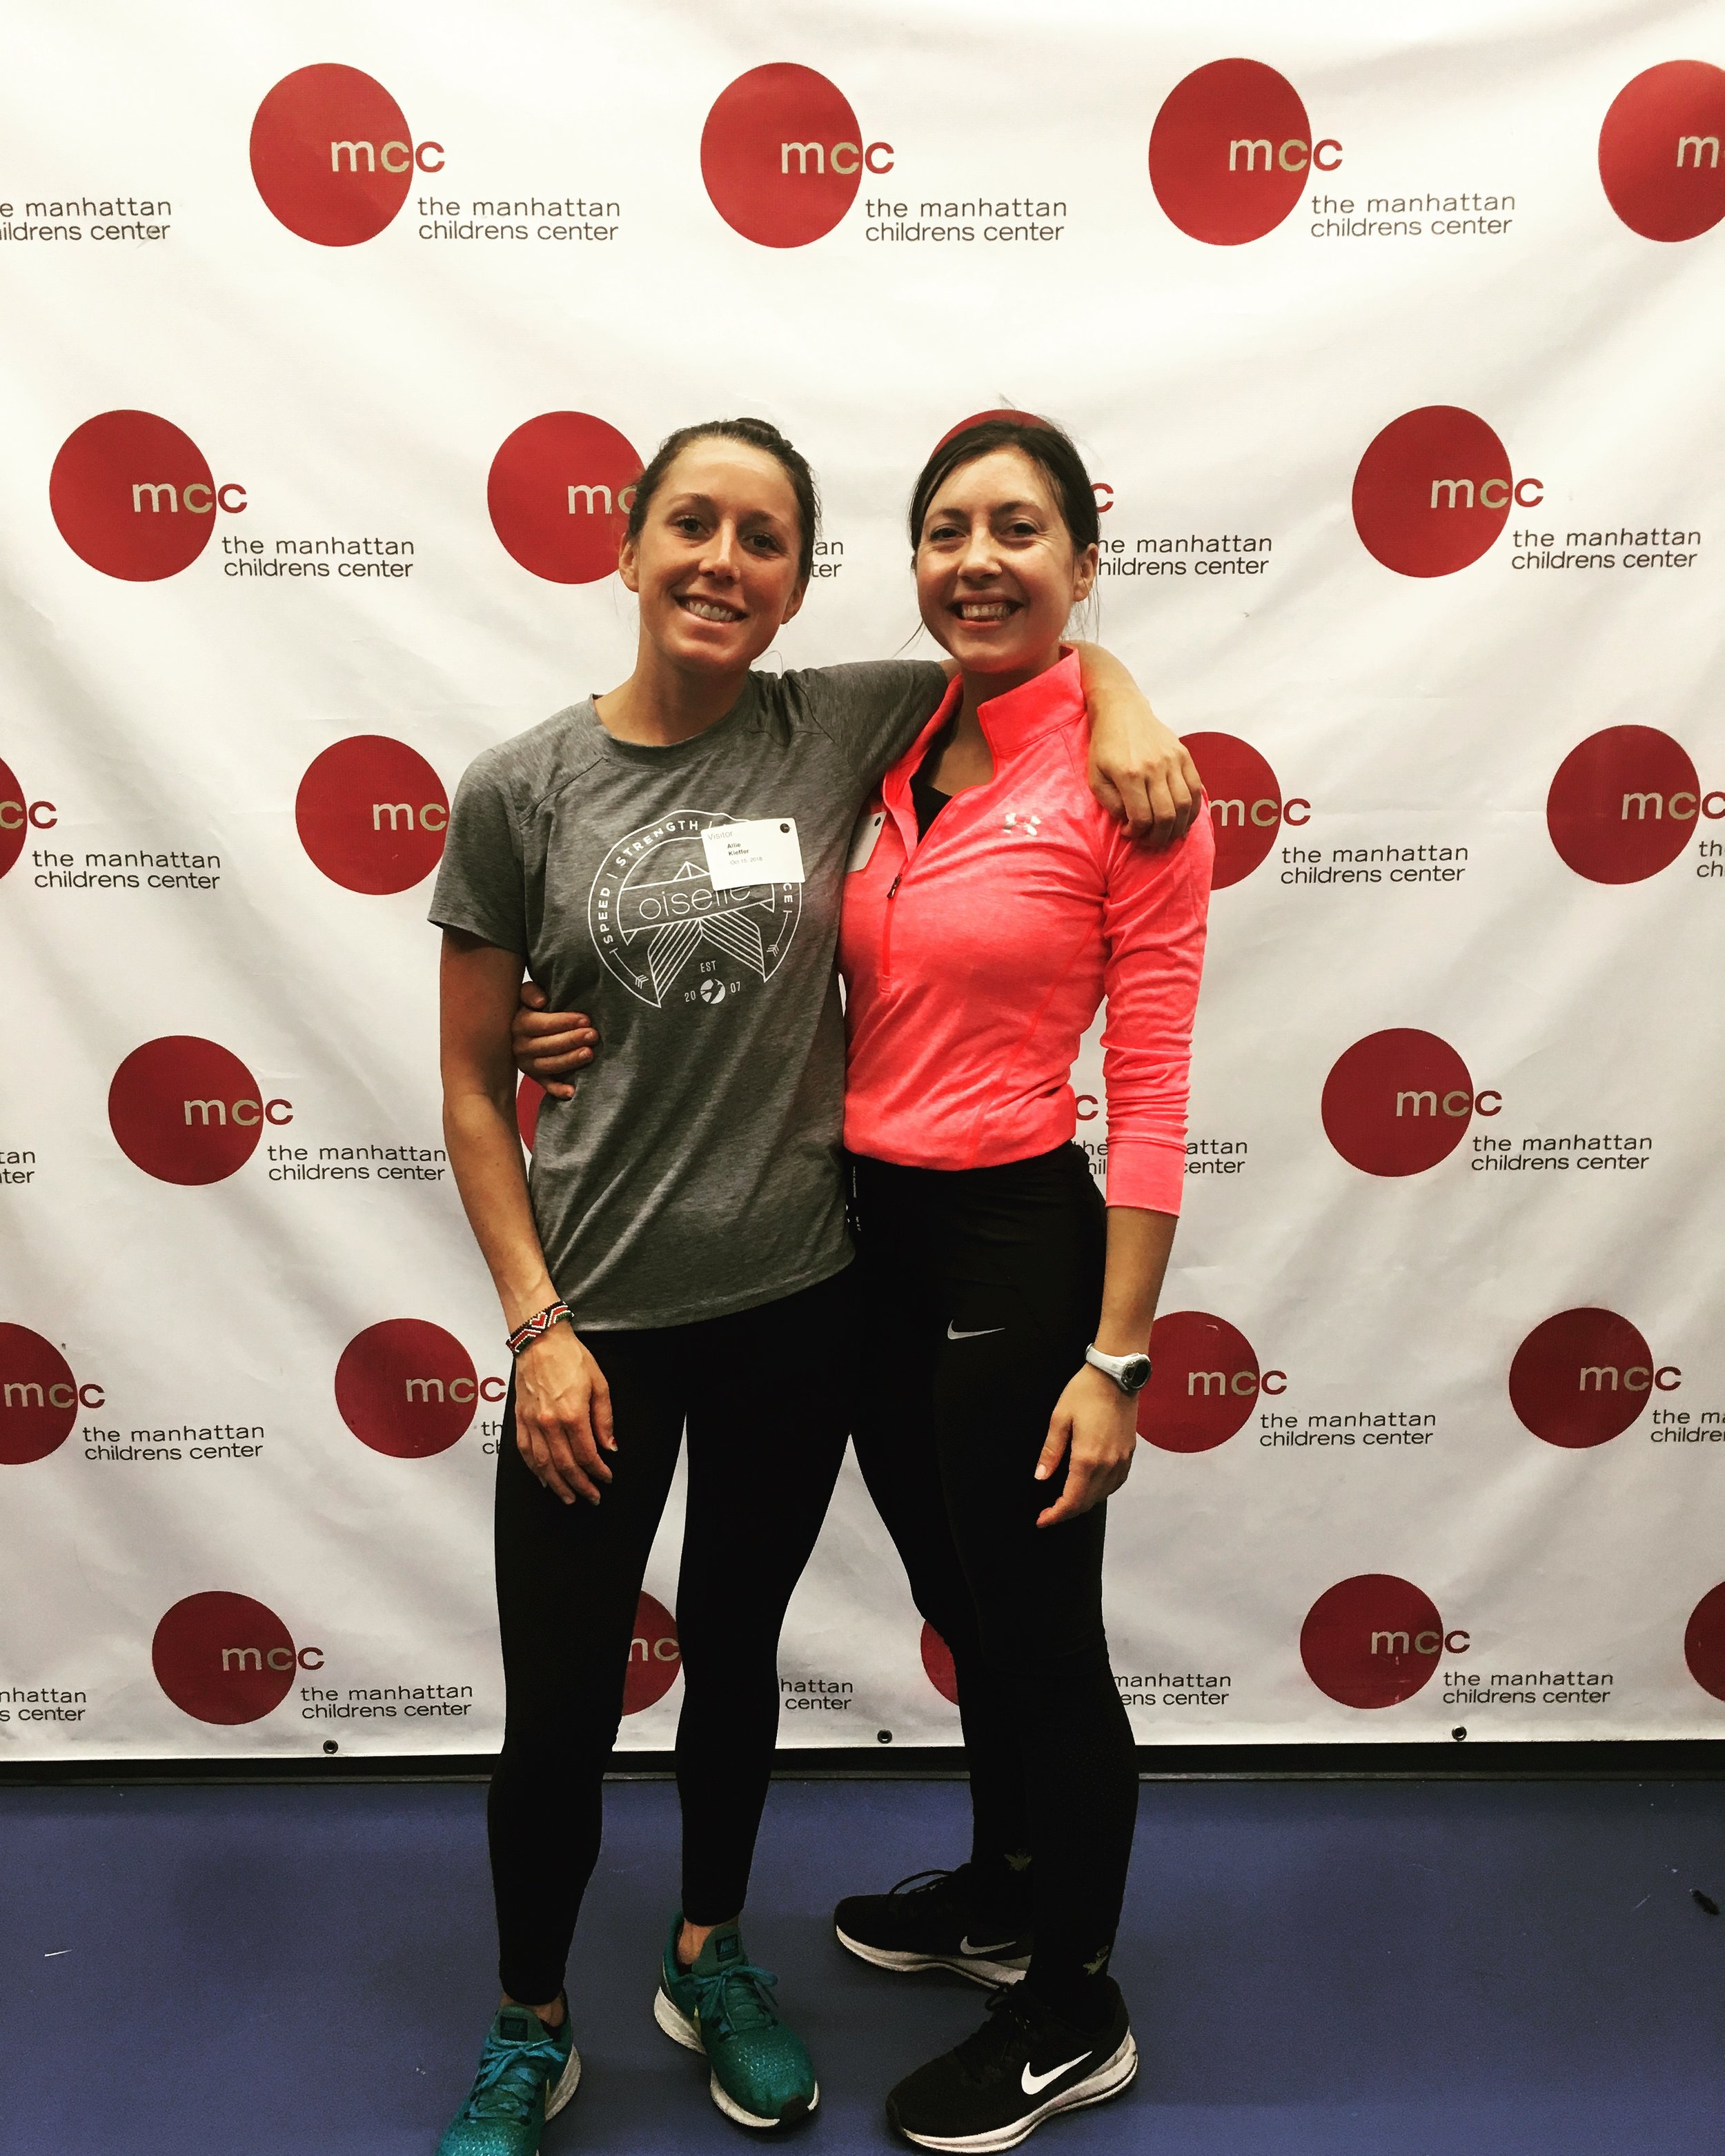 Allie Kieffer visits Fast Feet NYC! - Professional runner Allie Kieffer, former teammate of Suzie Clinchy, and her coach, Brad Hudson, visited a Fast Feet NYC program at Manhattan Childrens Center in October 2018. Allie had won the Staten Inland Half Marathon just a day prior to her visit with us!